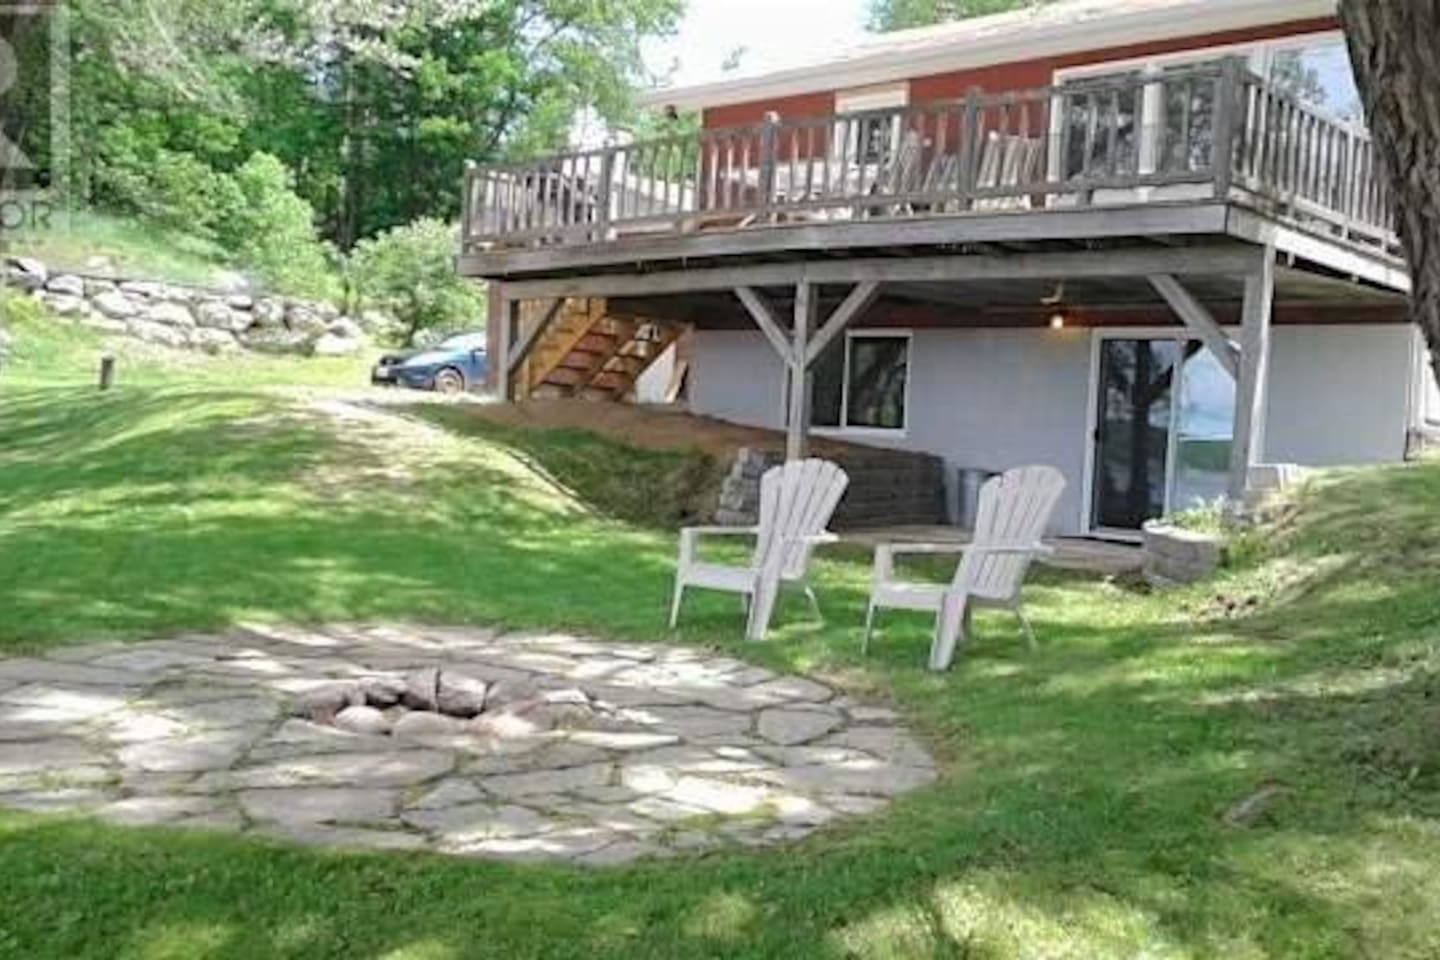 Relax on the deck or by the fire with a view of Lake Kaminiskeg. All within a few kilometres of gas, groceries, restaurants and a hospital.